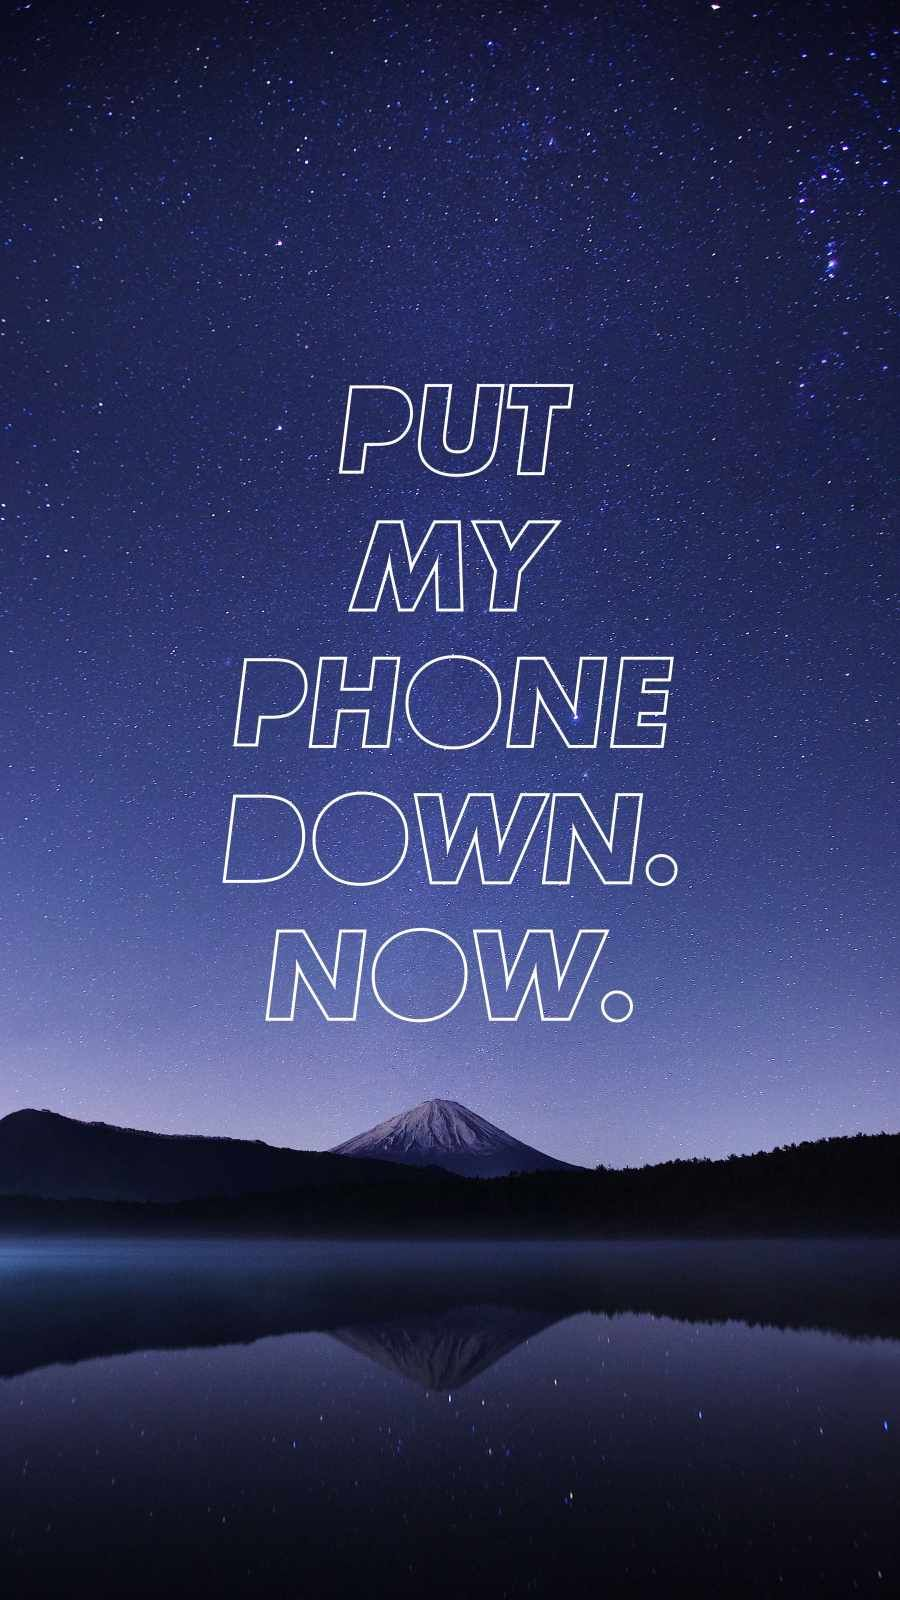 Put My Phone Down Now - IPhone Wallpapers